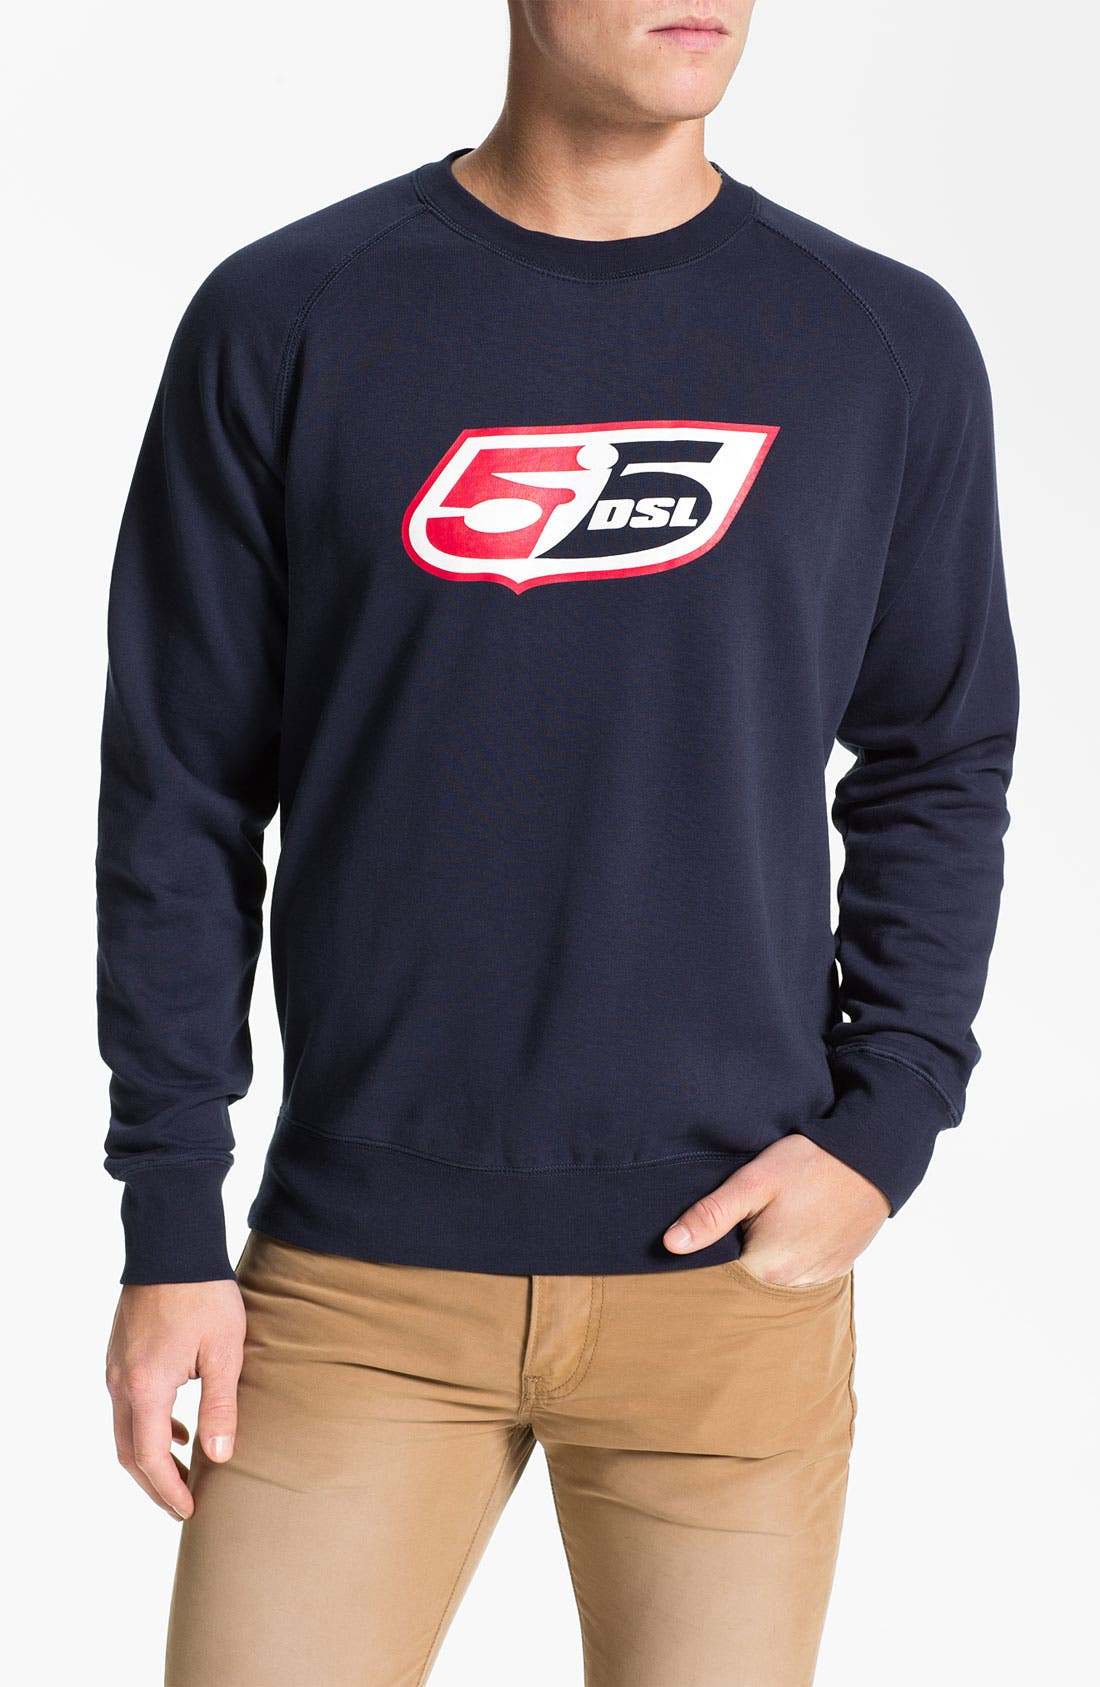 Alternate Image 1 Selected - 55DSL 'F Logo' Crewneck Sweatshirt